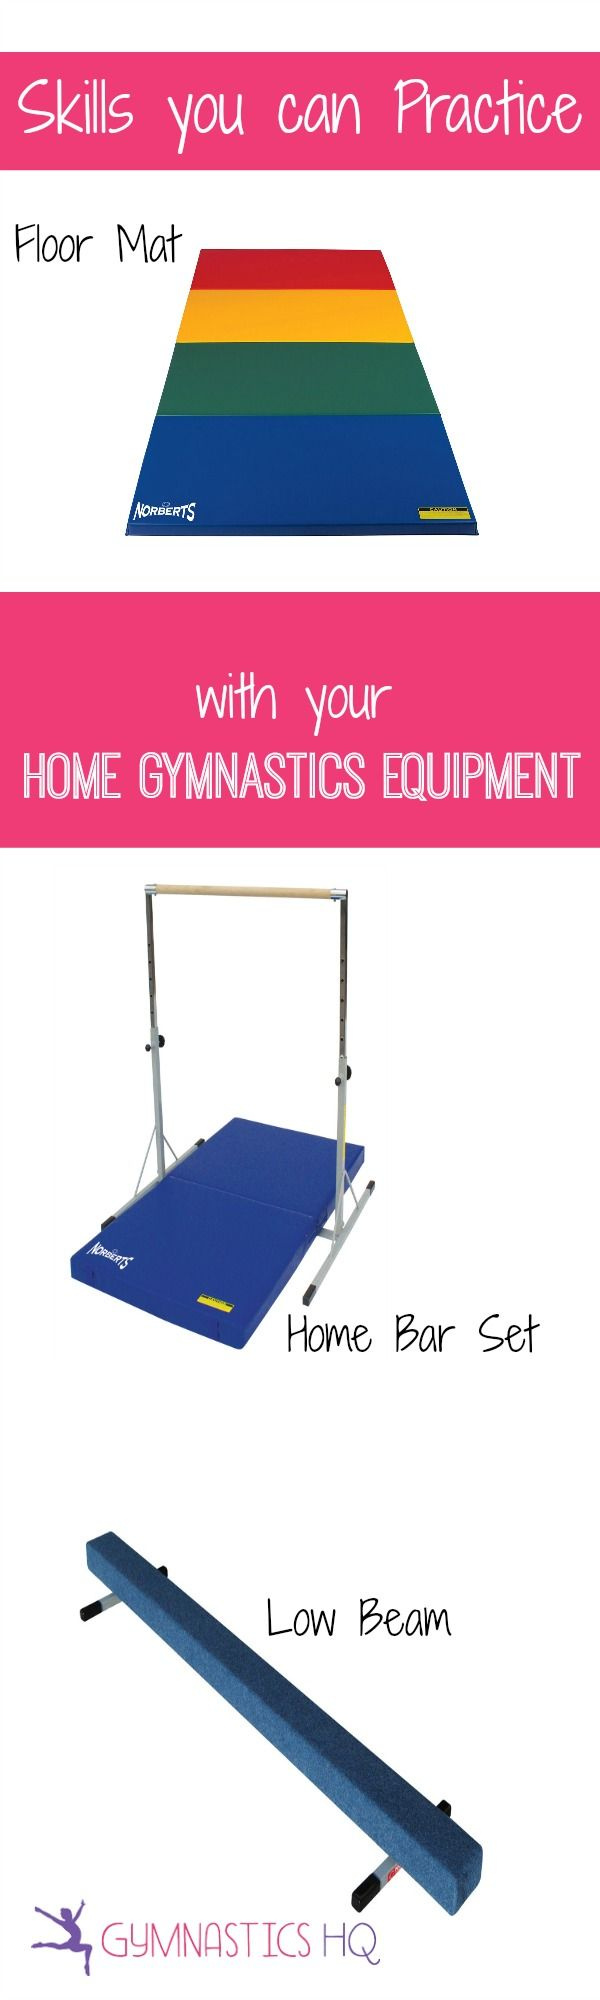 List of Gymnastics Skills you can Practice at Home with your Home Gymnastics Equipment